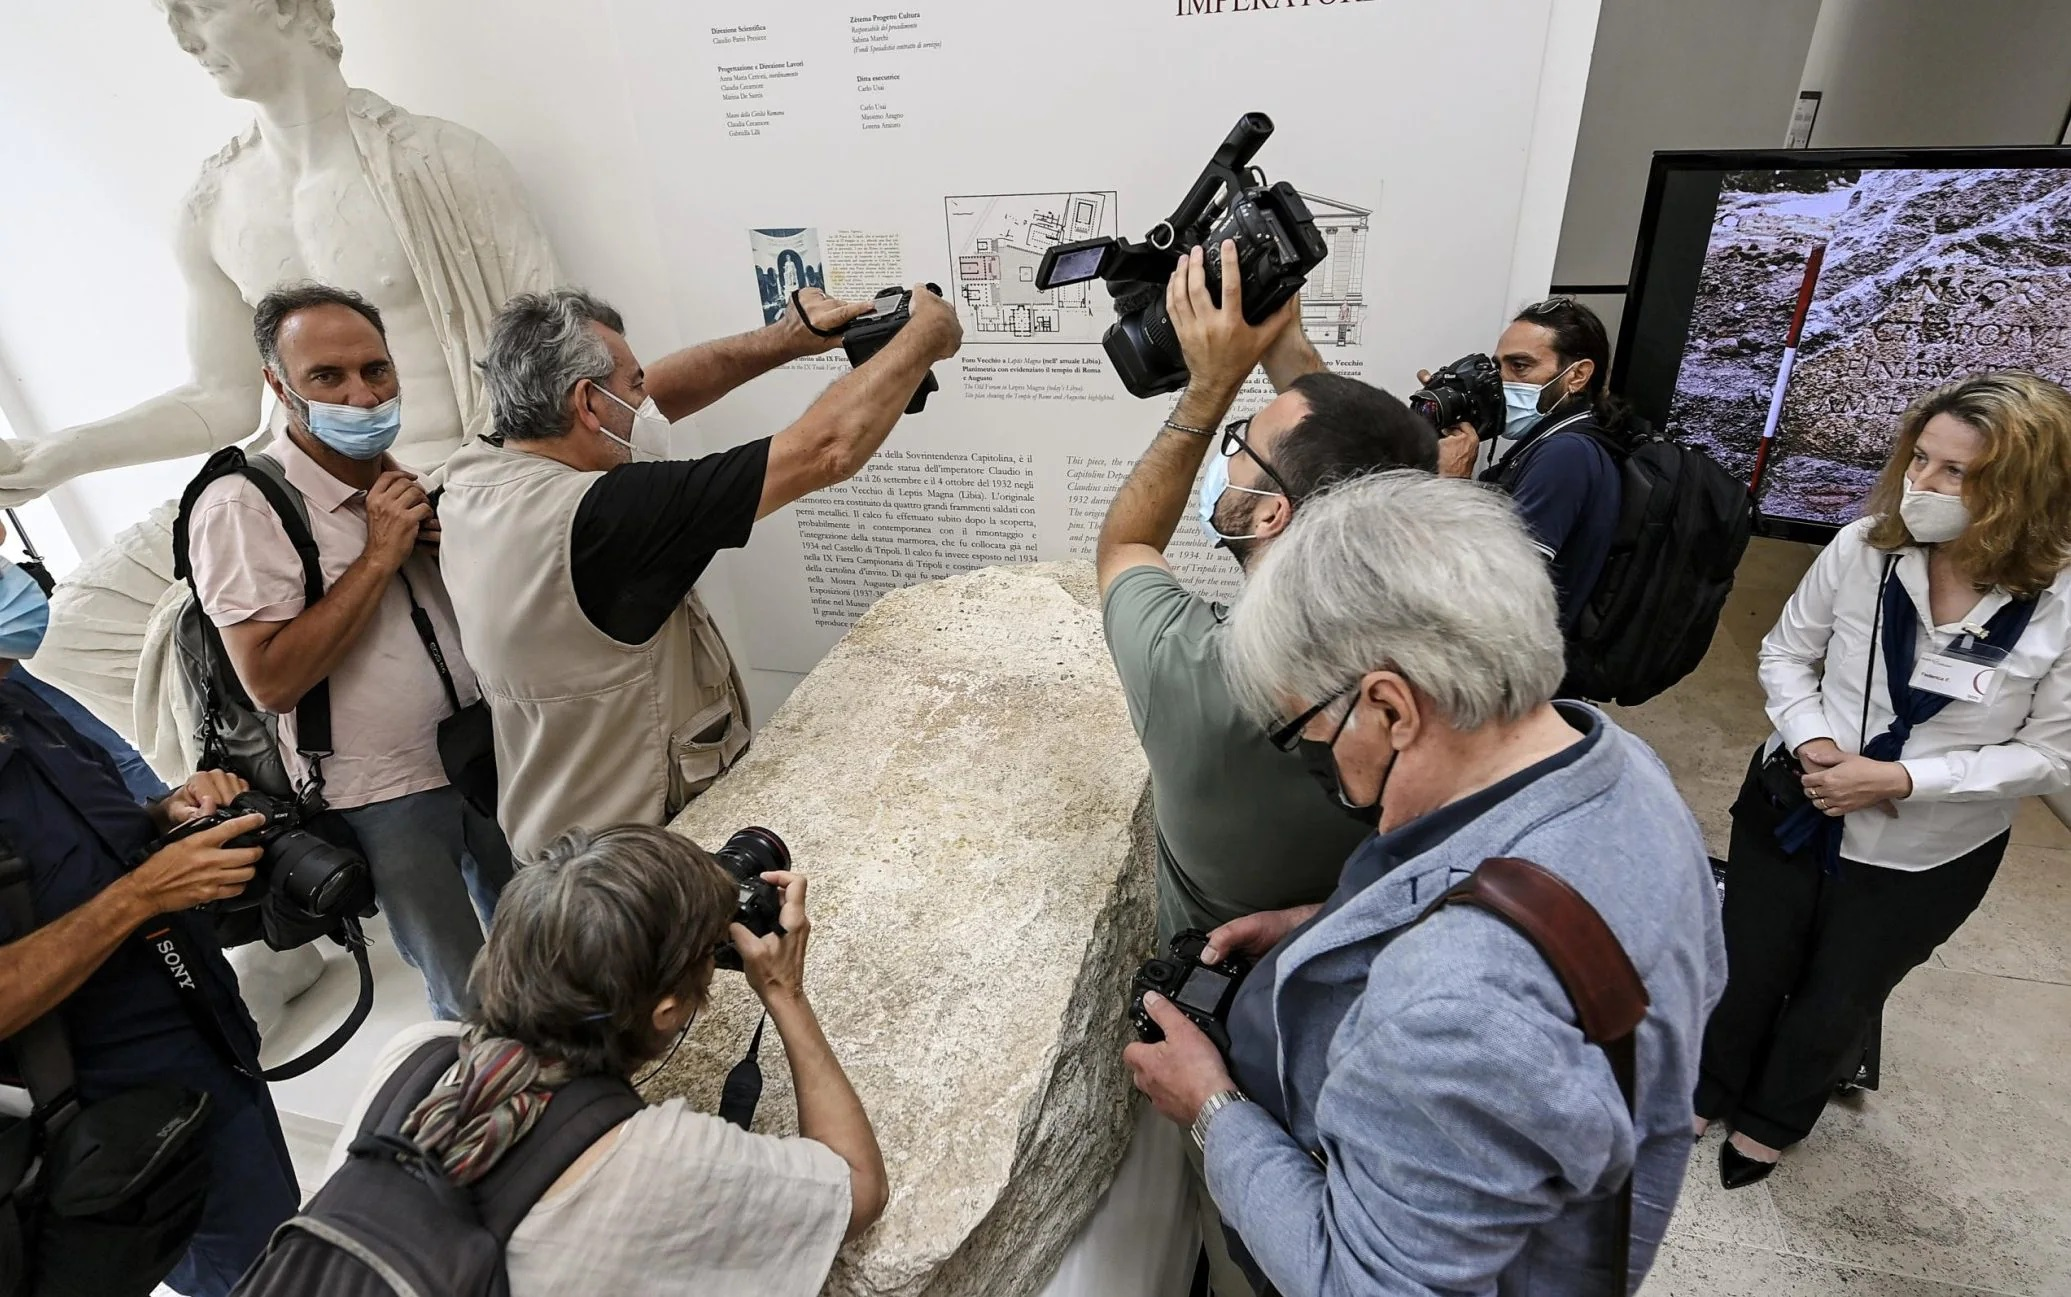 The Pomerium Stone On Display at the Museum